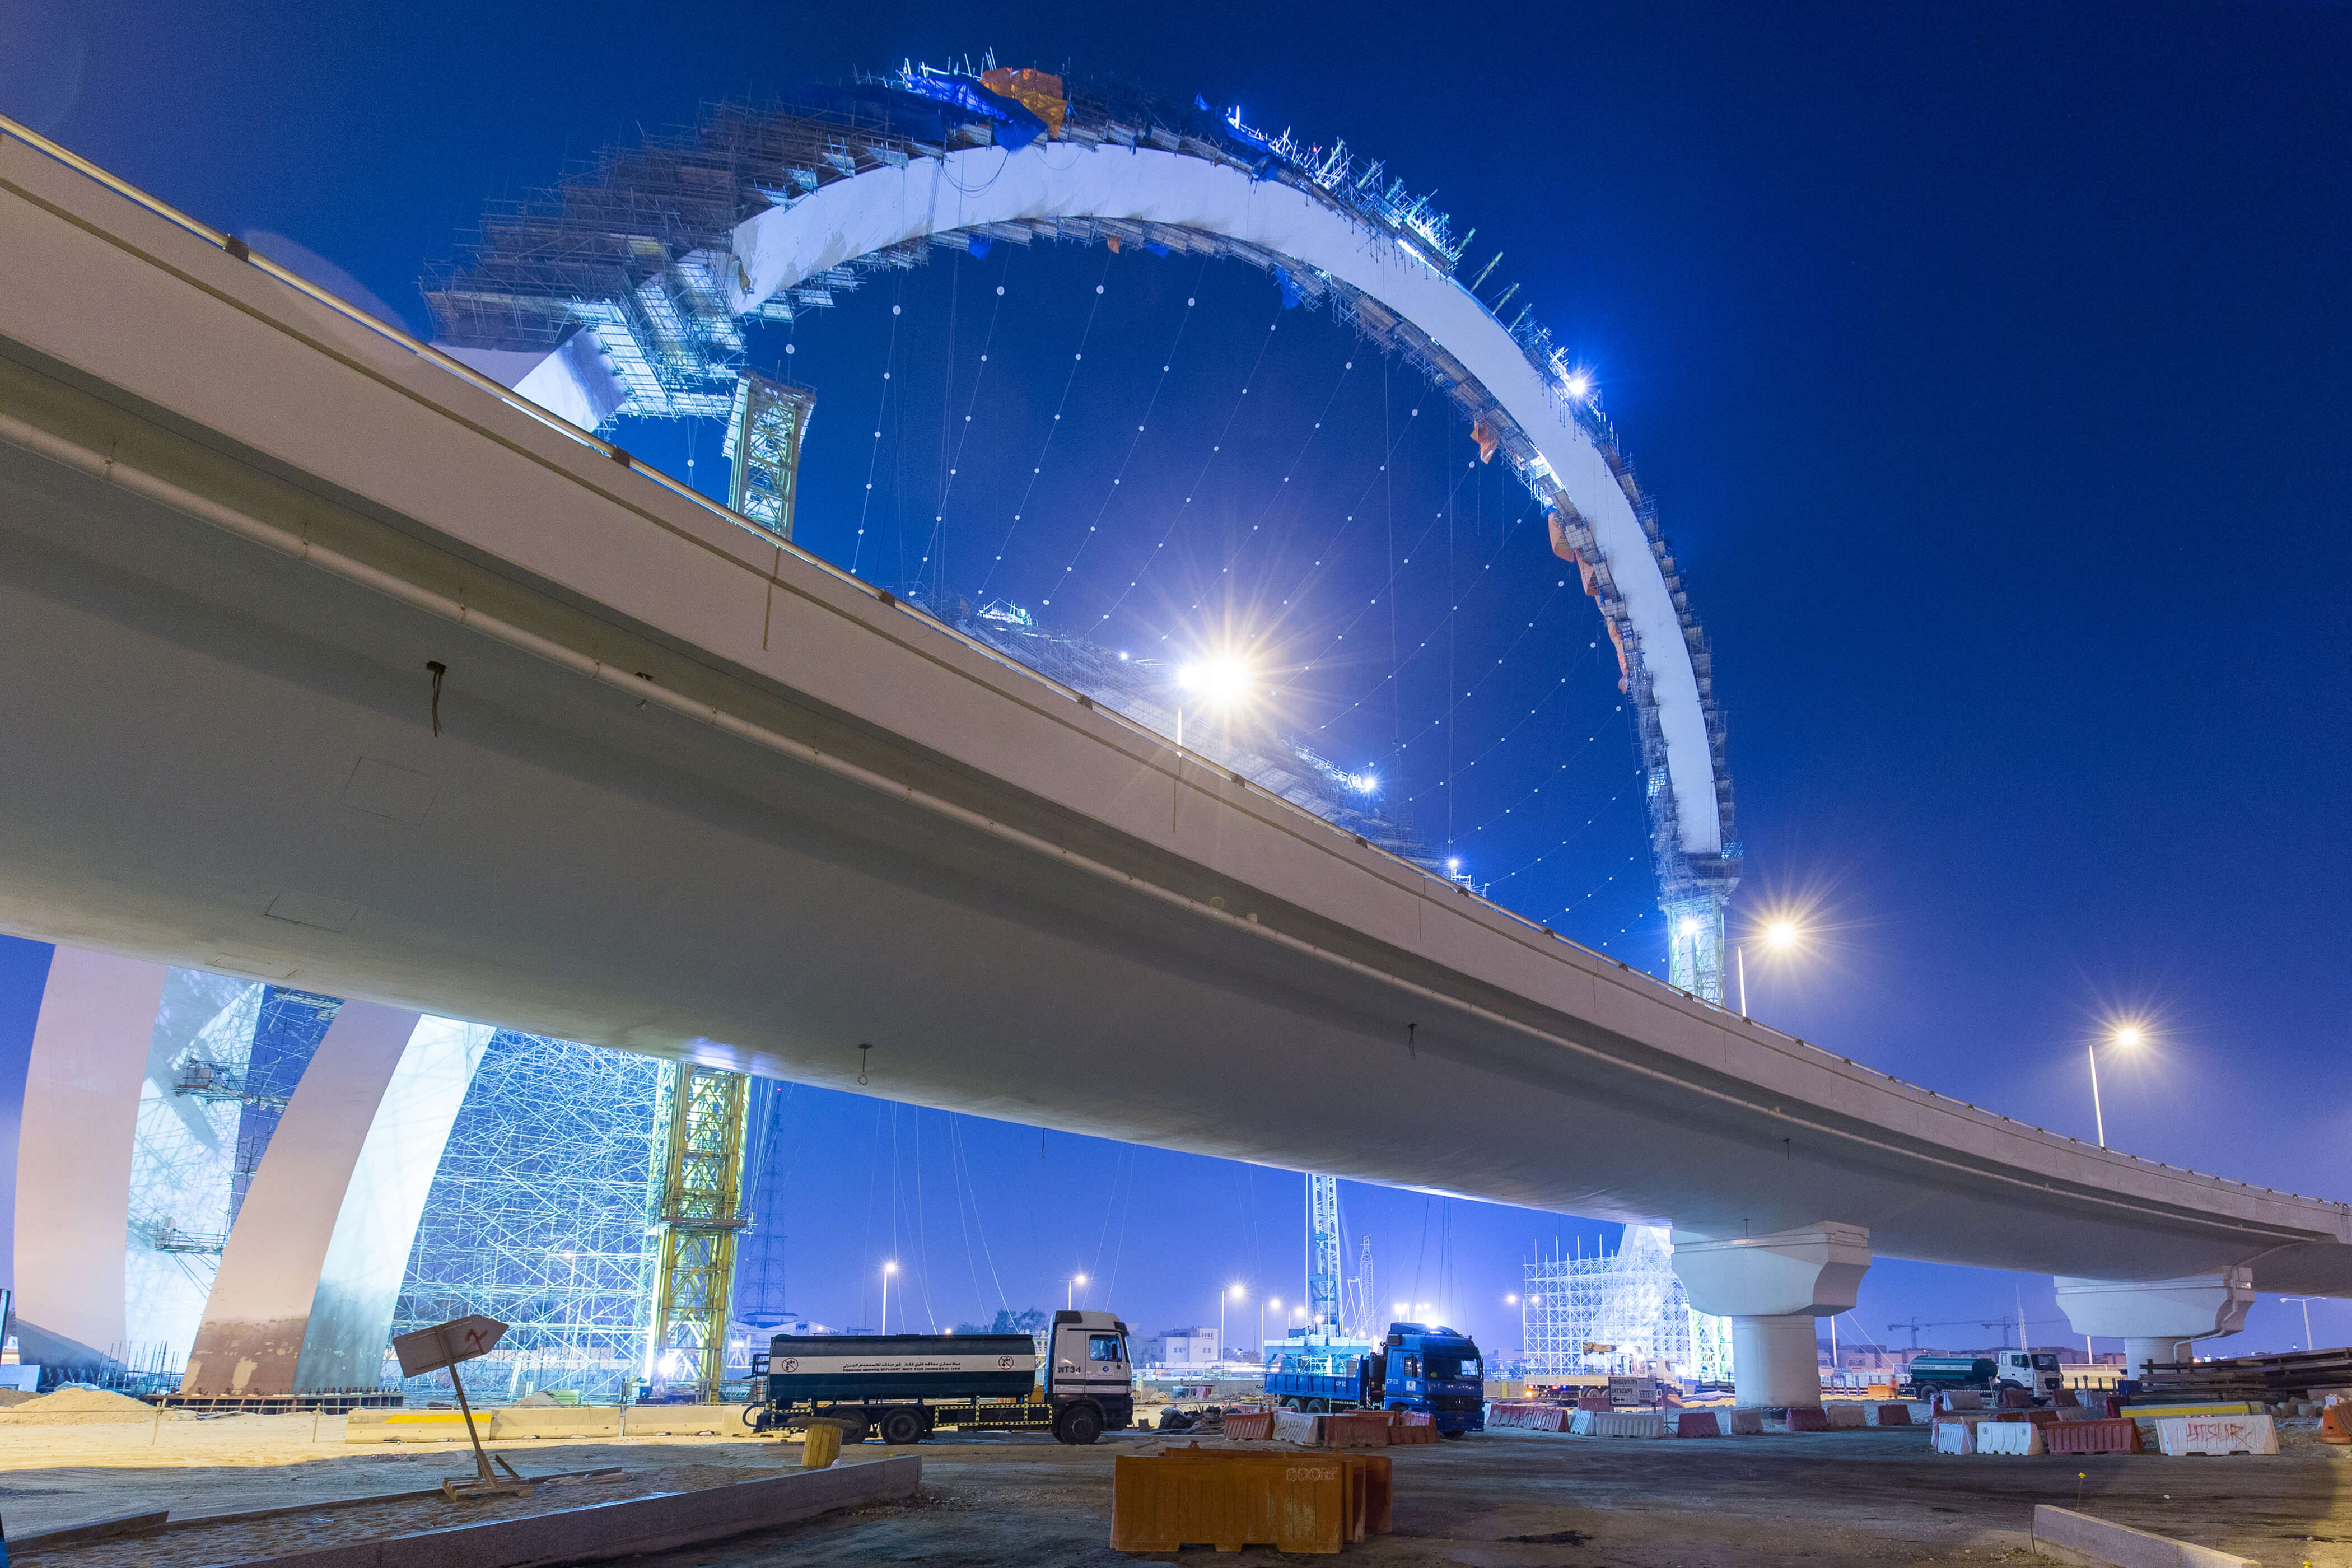 Open Doors Lusail Expressway_5-6 Arches-2